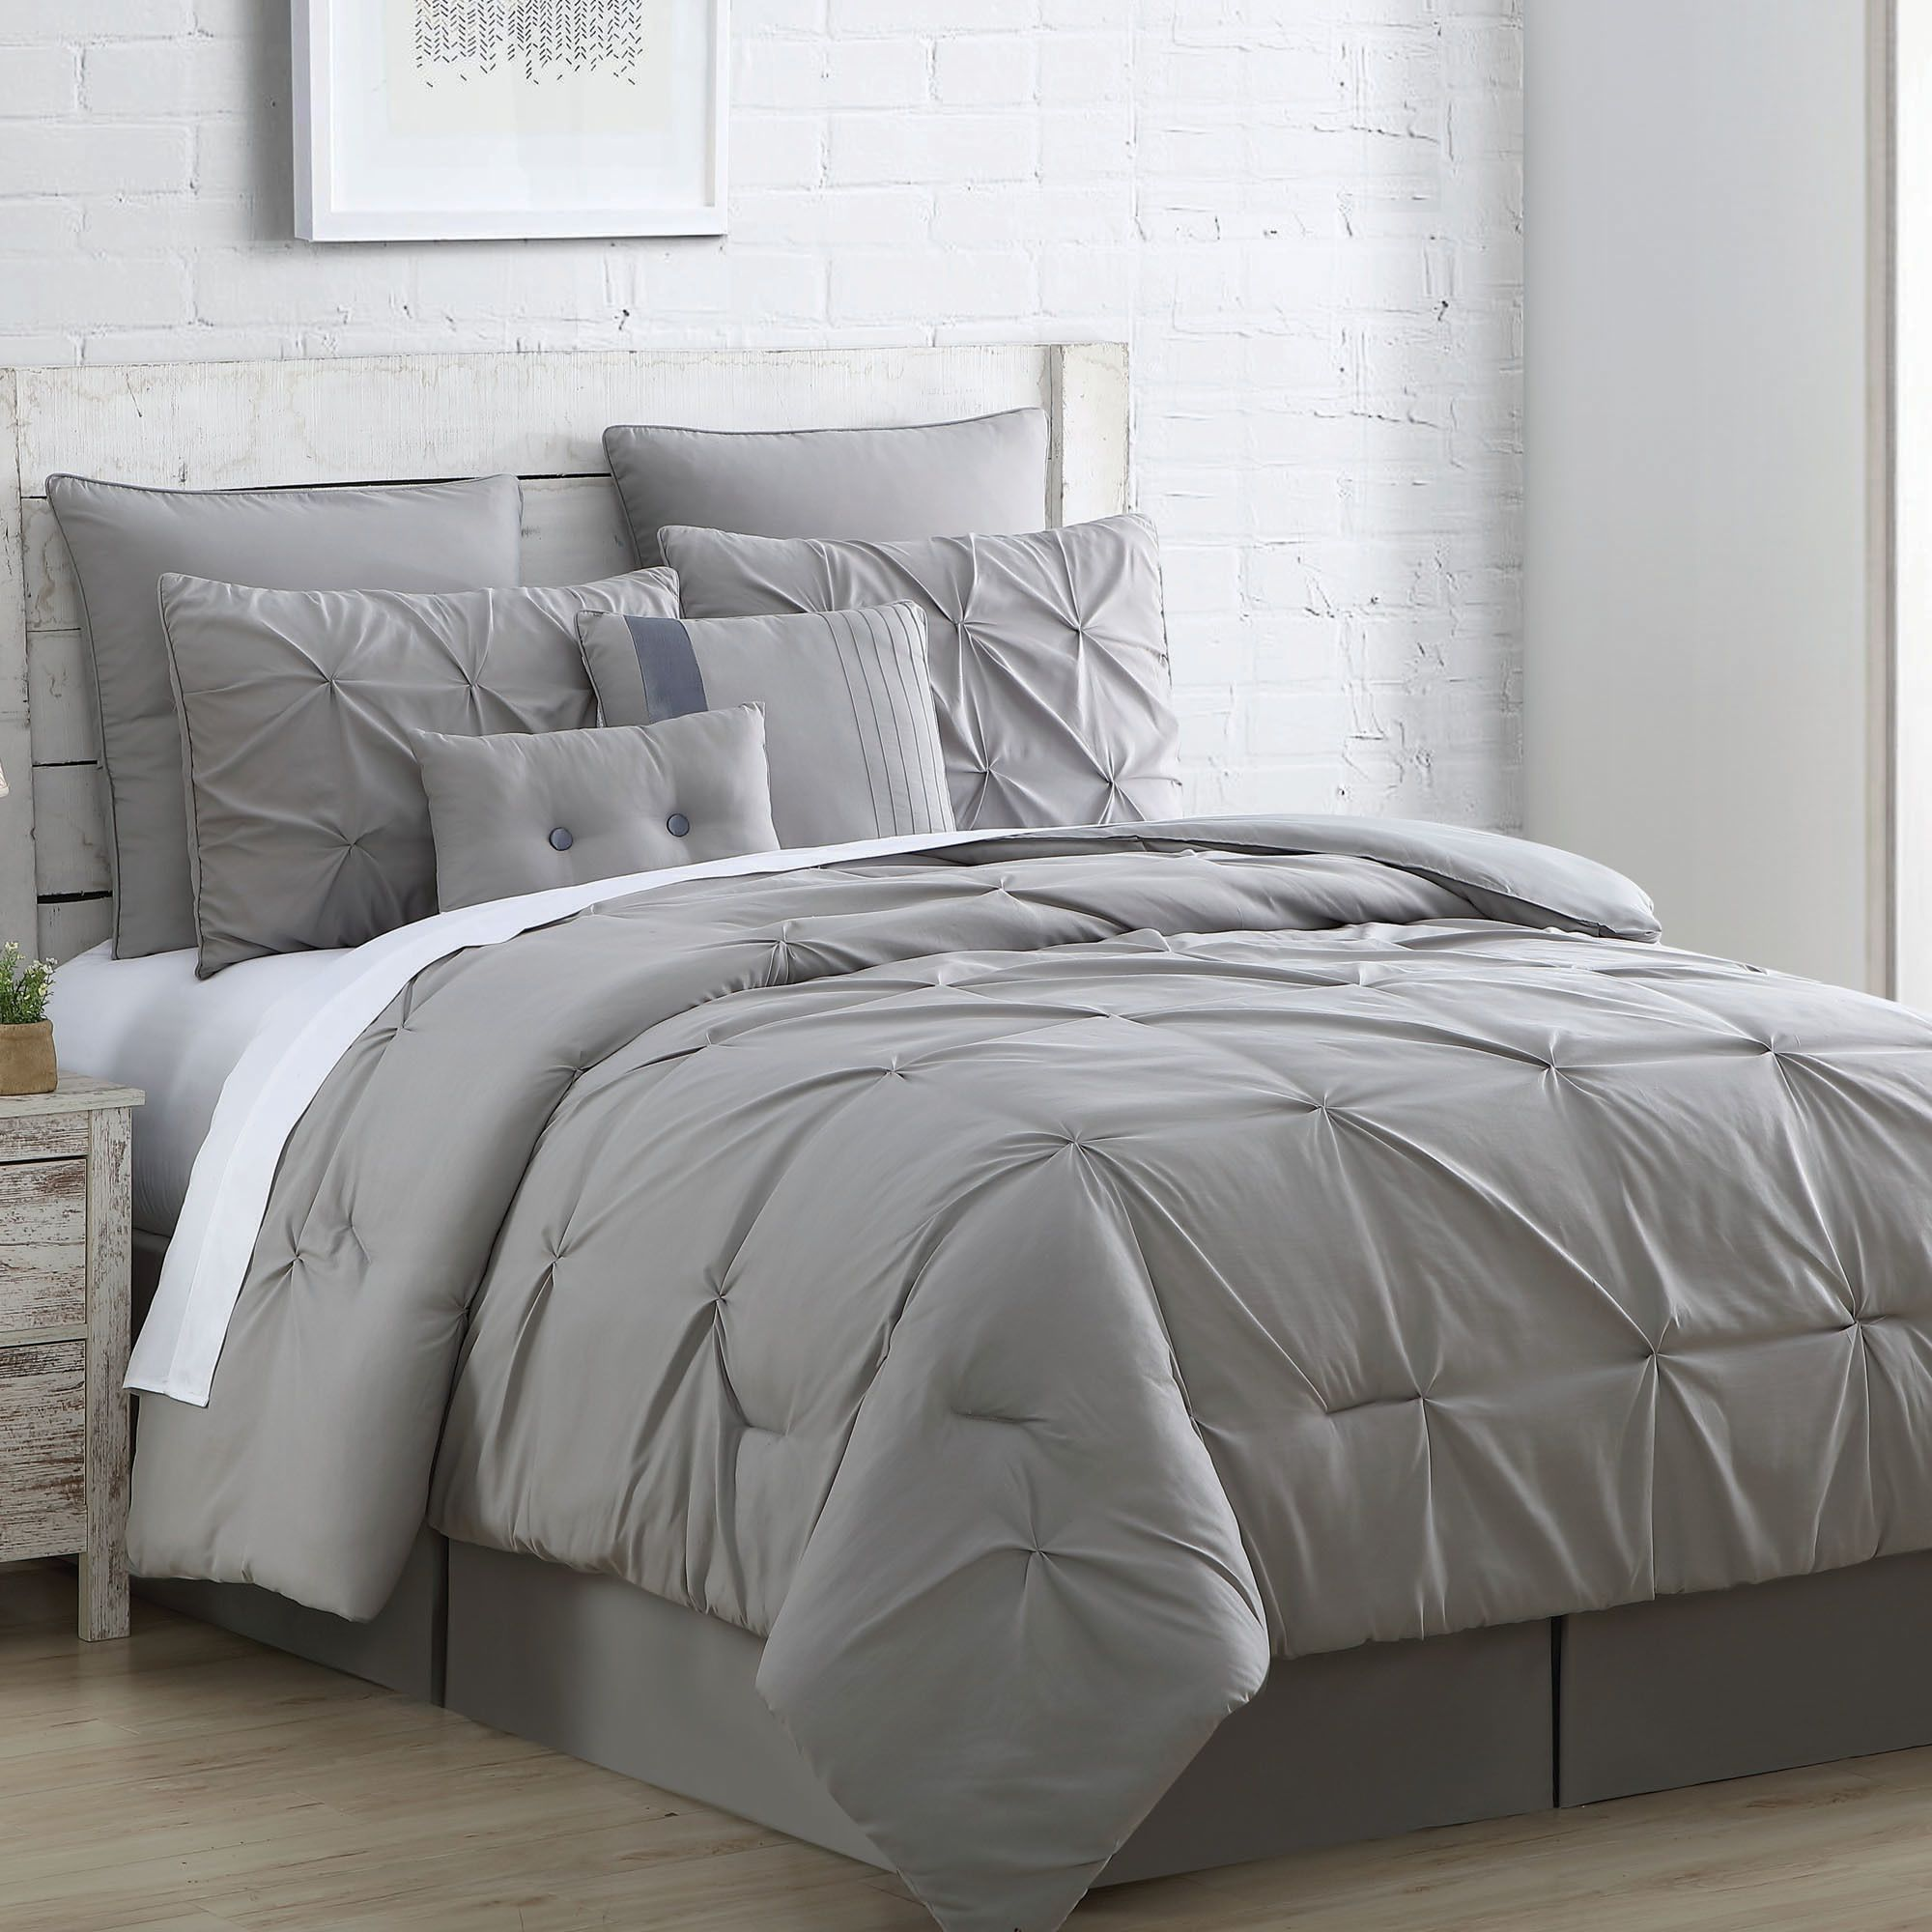 2 FACE 1 COMFORTER SOLID DOWN ALTERNATIVE COMFORTER 3PC SET IN MIX MATCH COLORS